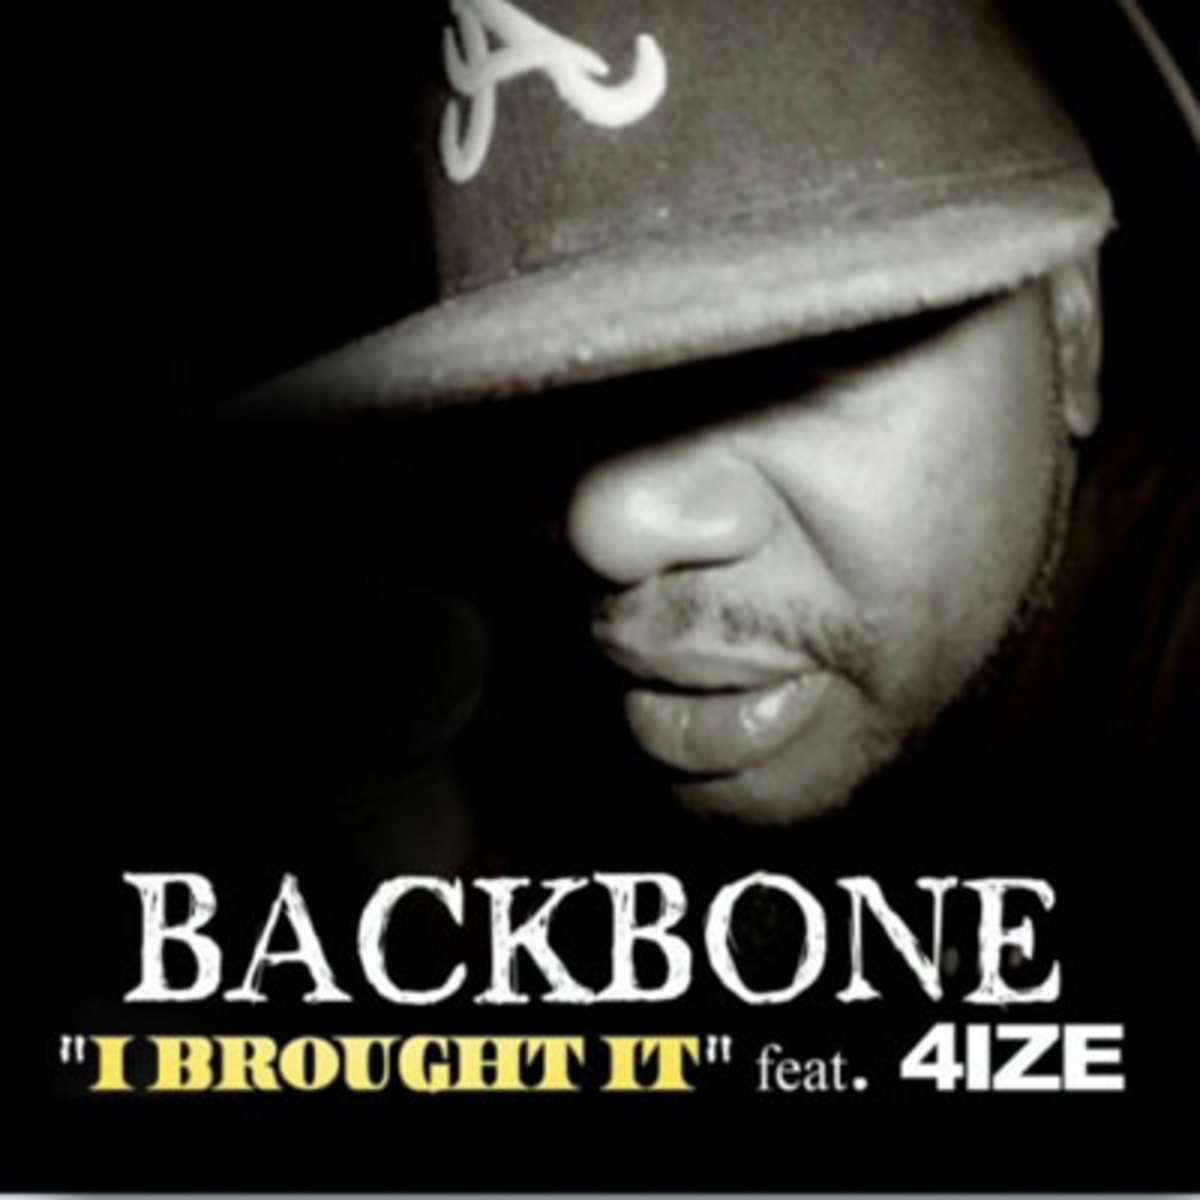 backbone-ibroughtit.jpg